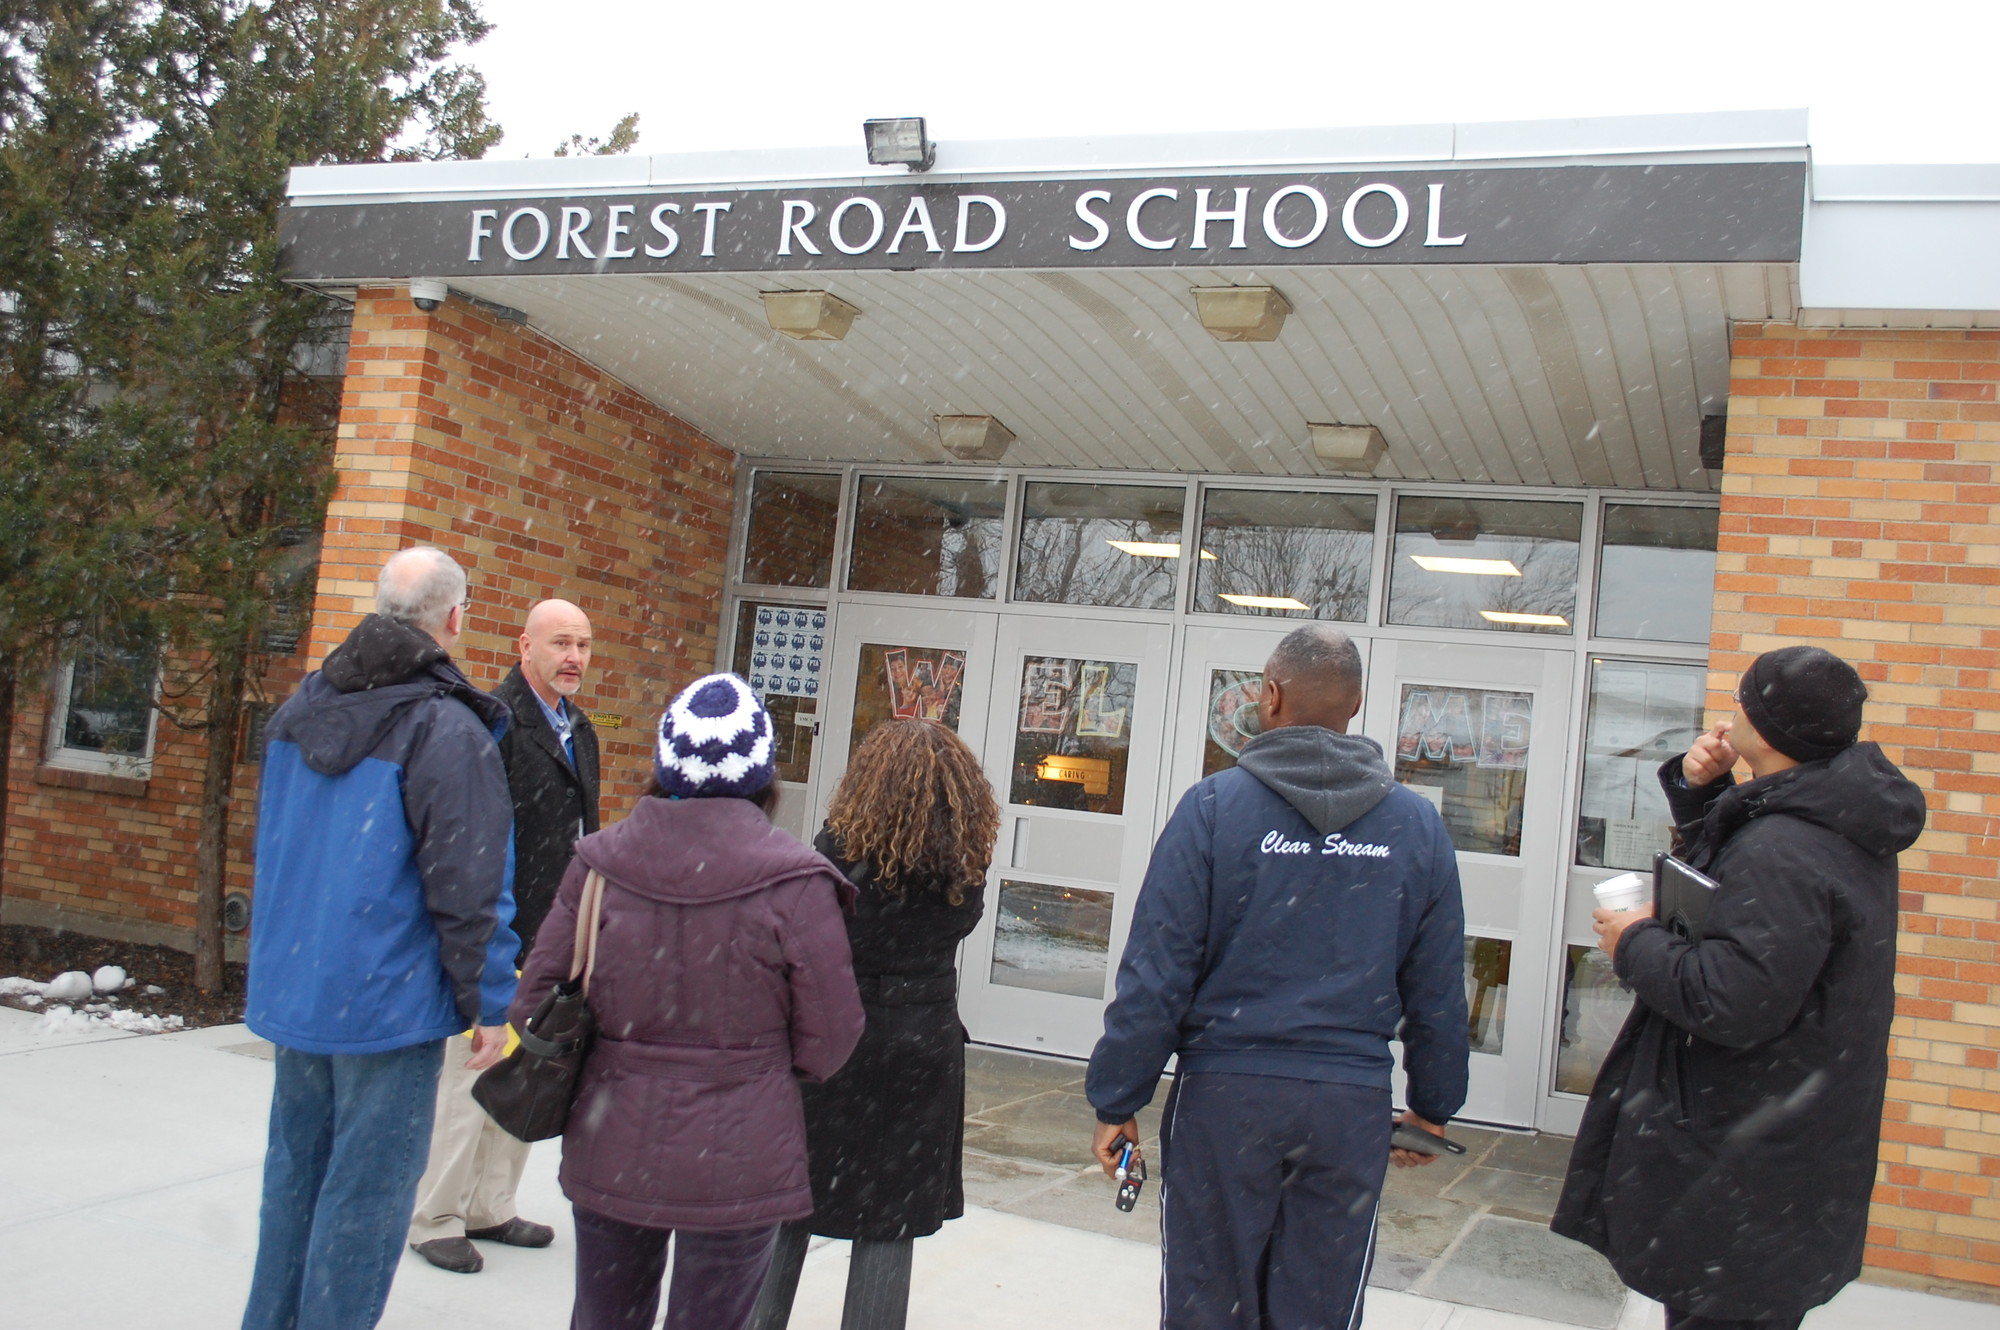 District 30 officials looked at the new sign above the entrance to Forest Road School during last Saturday's building tour.